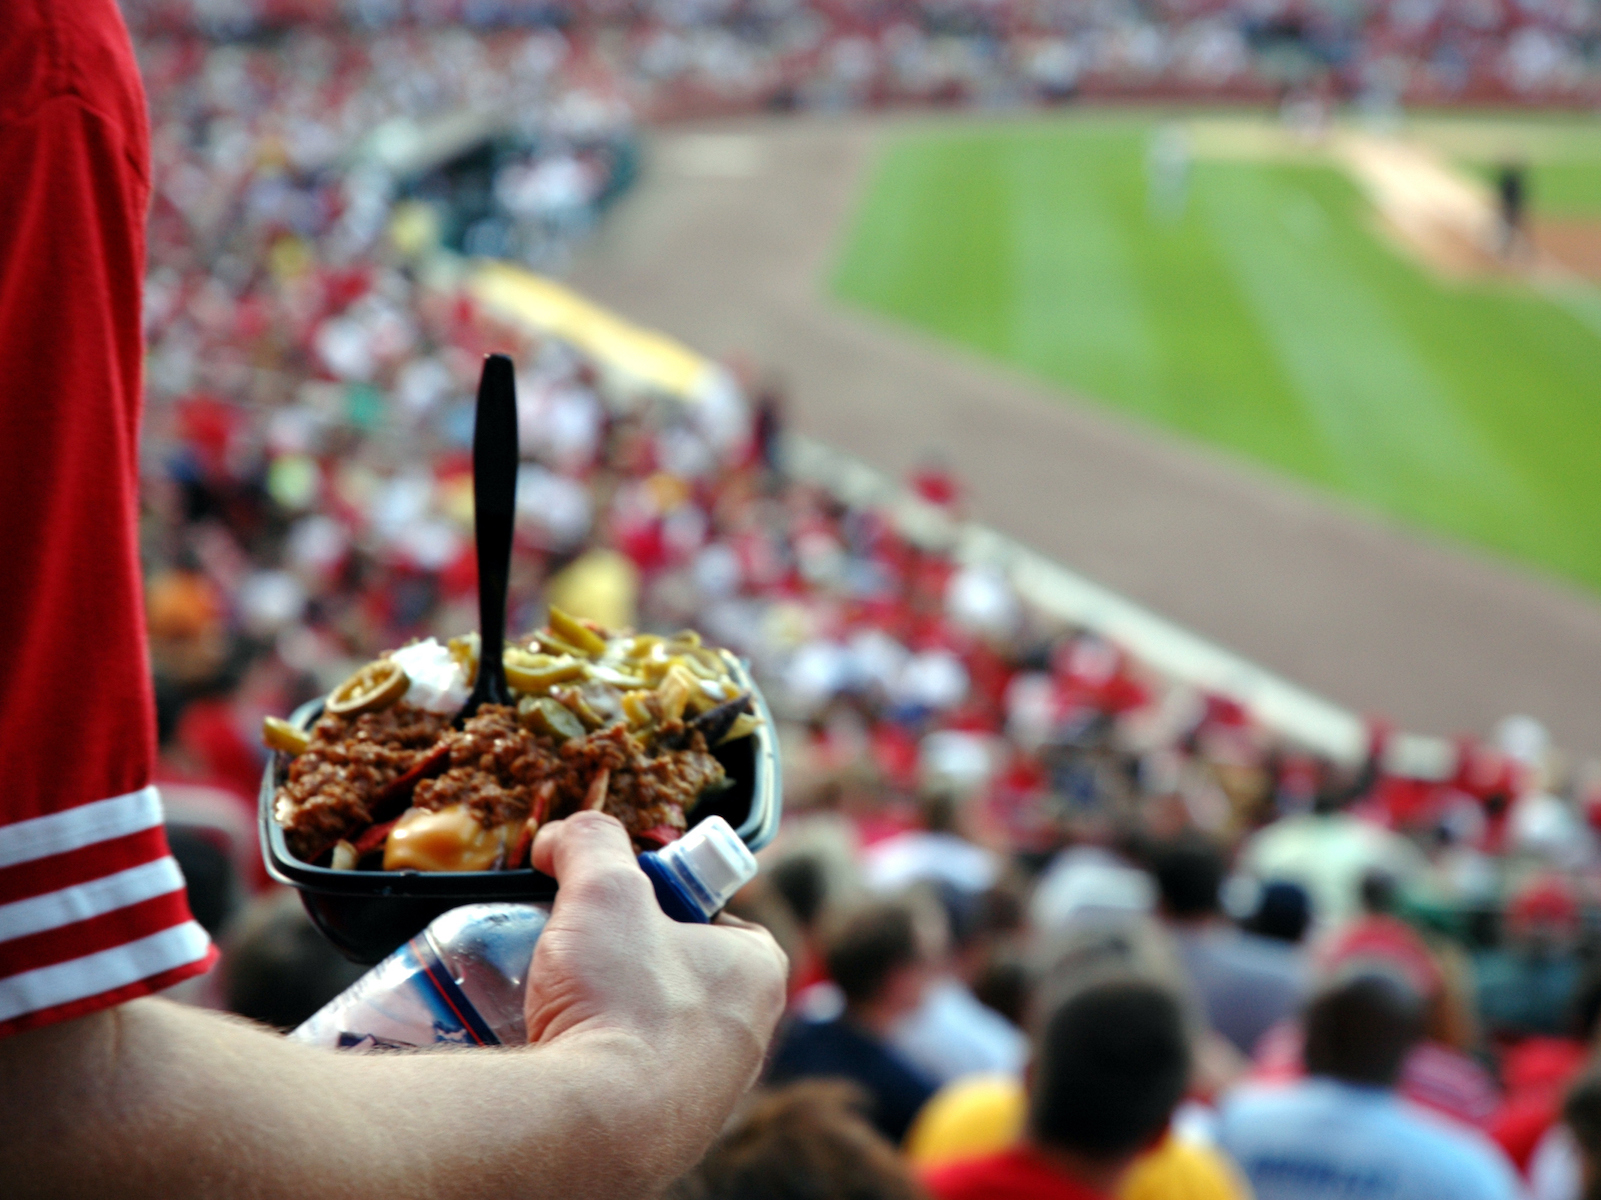 stadium-food-fight-FT-BLOG0818.jpg